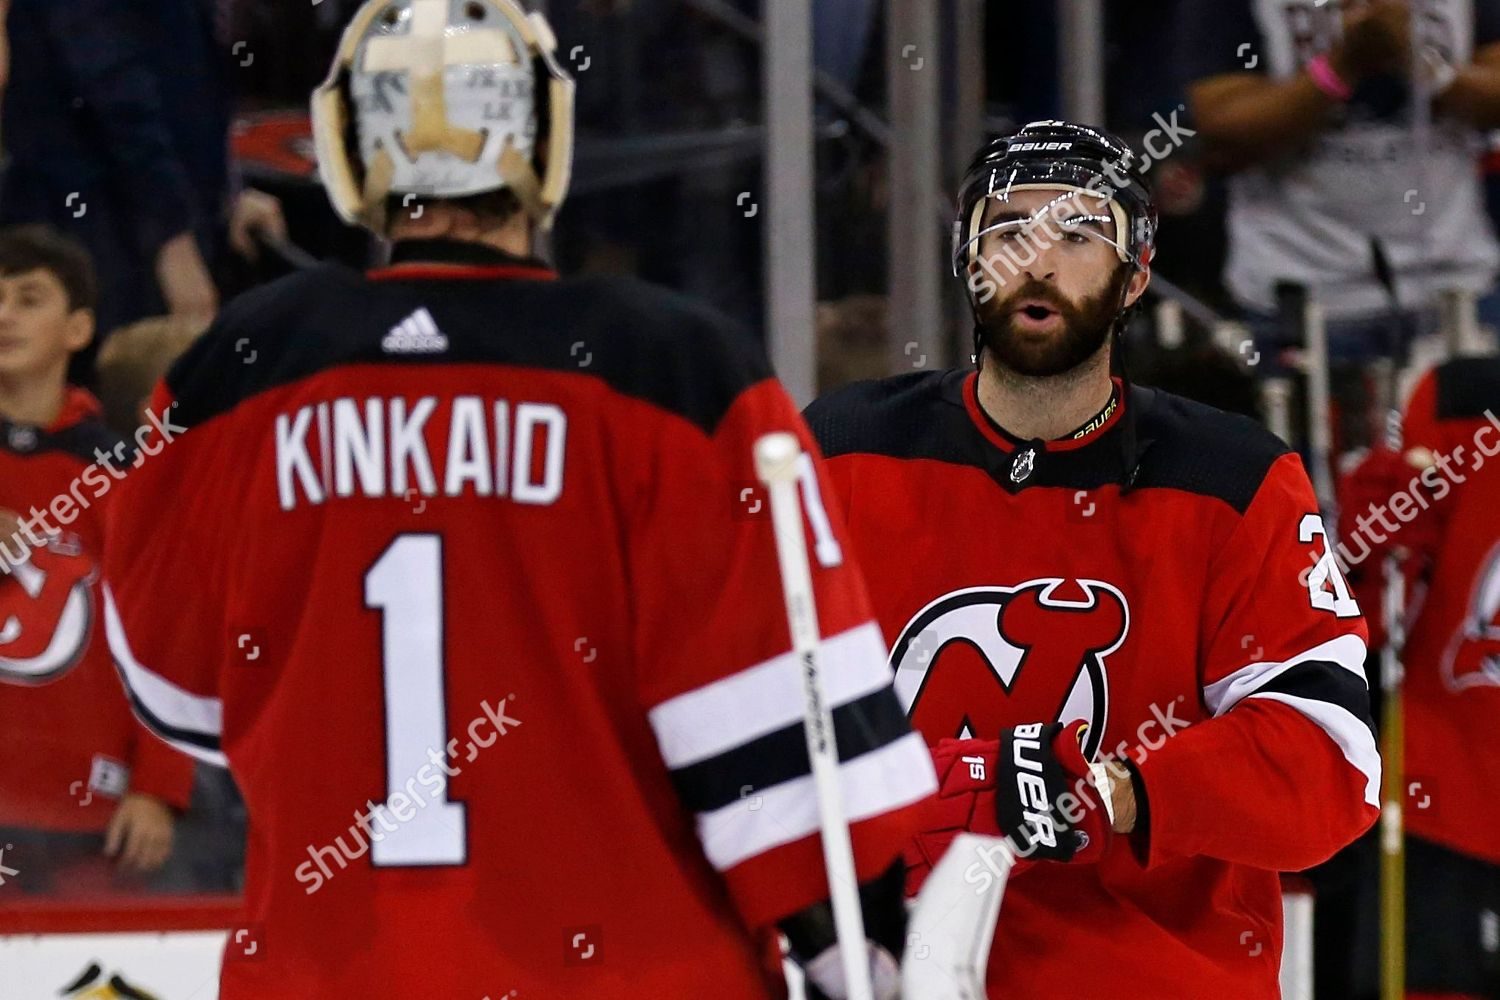 reputable site f24ef c9c4d New Jersey Devils right wing Kyle Palmieri Editorial Stock ...